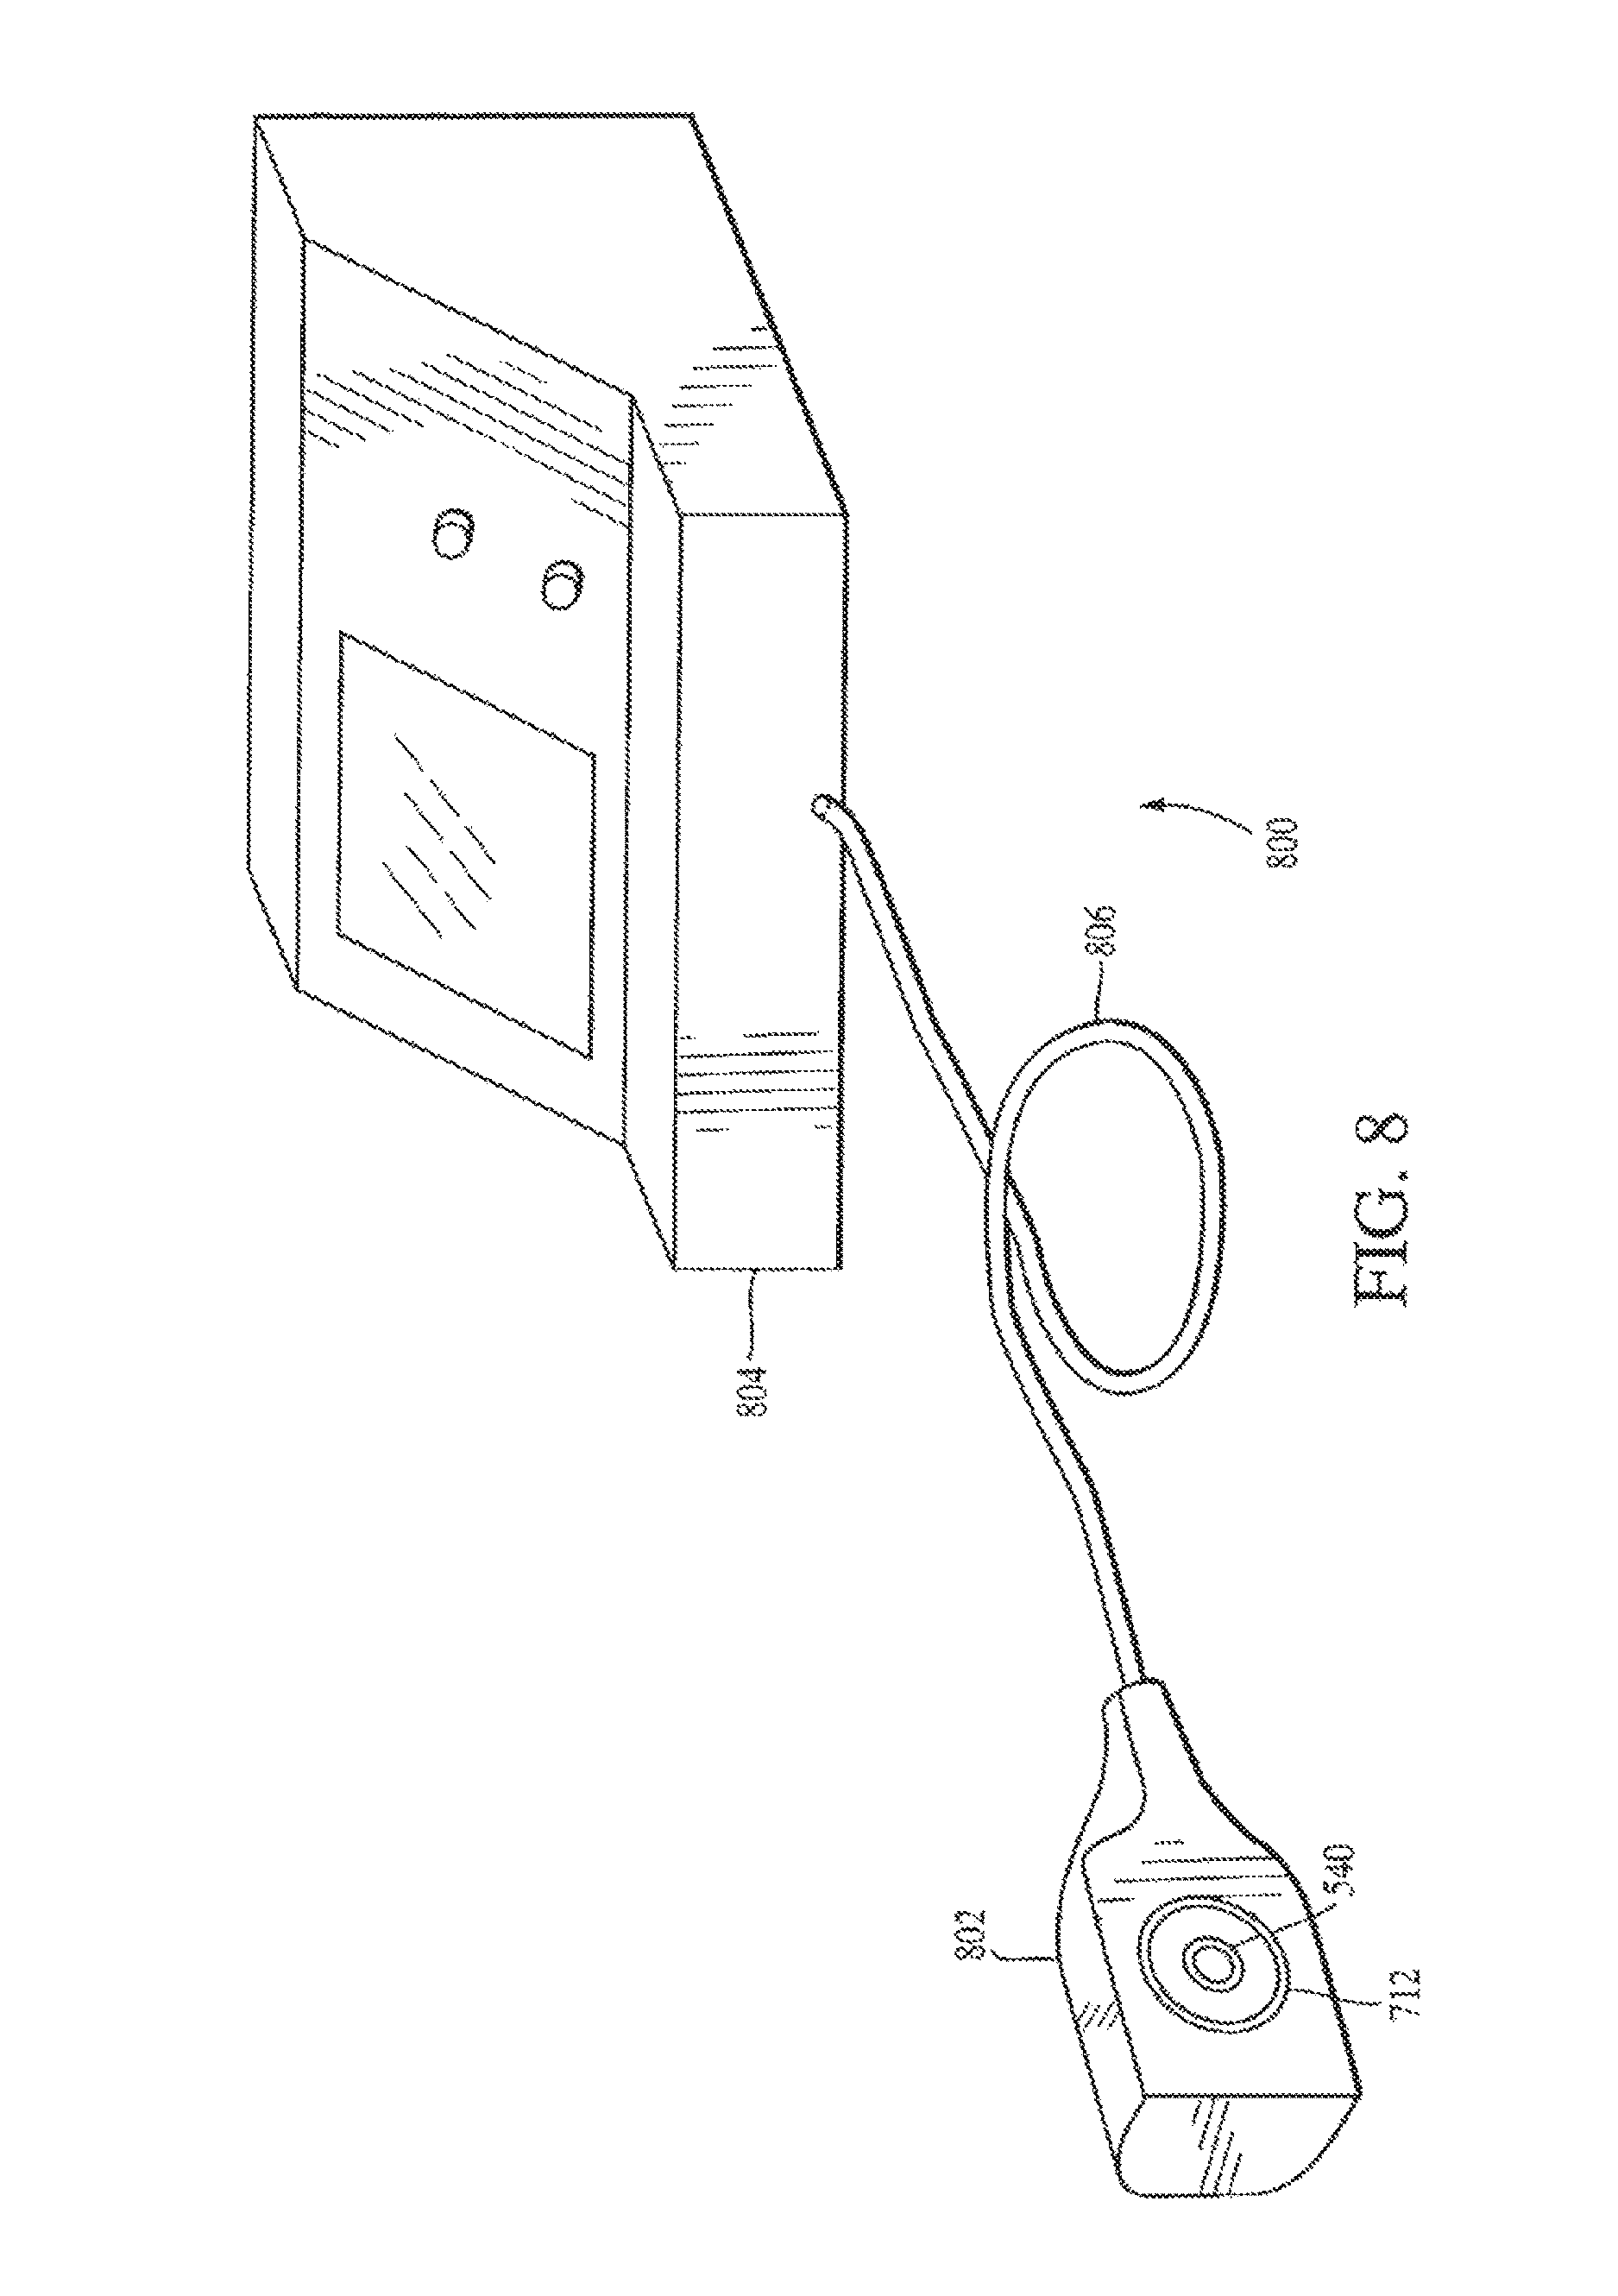 Patent Us 9913575 B2 Curved Circuit Board Art Make A Touchless Touchswitch Led Lamp 6